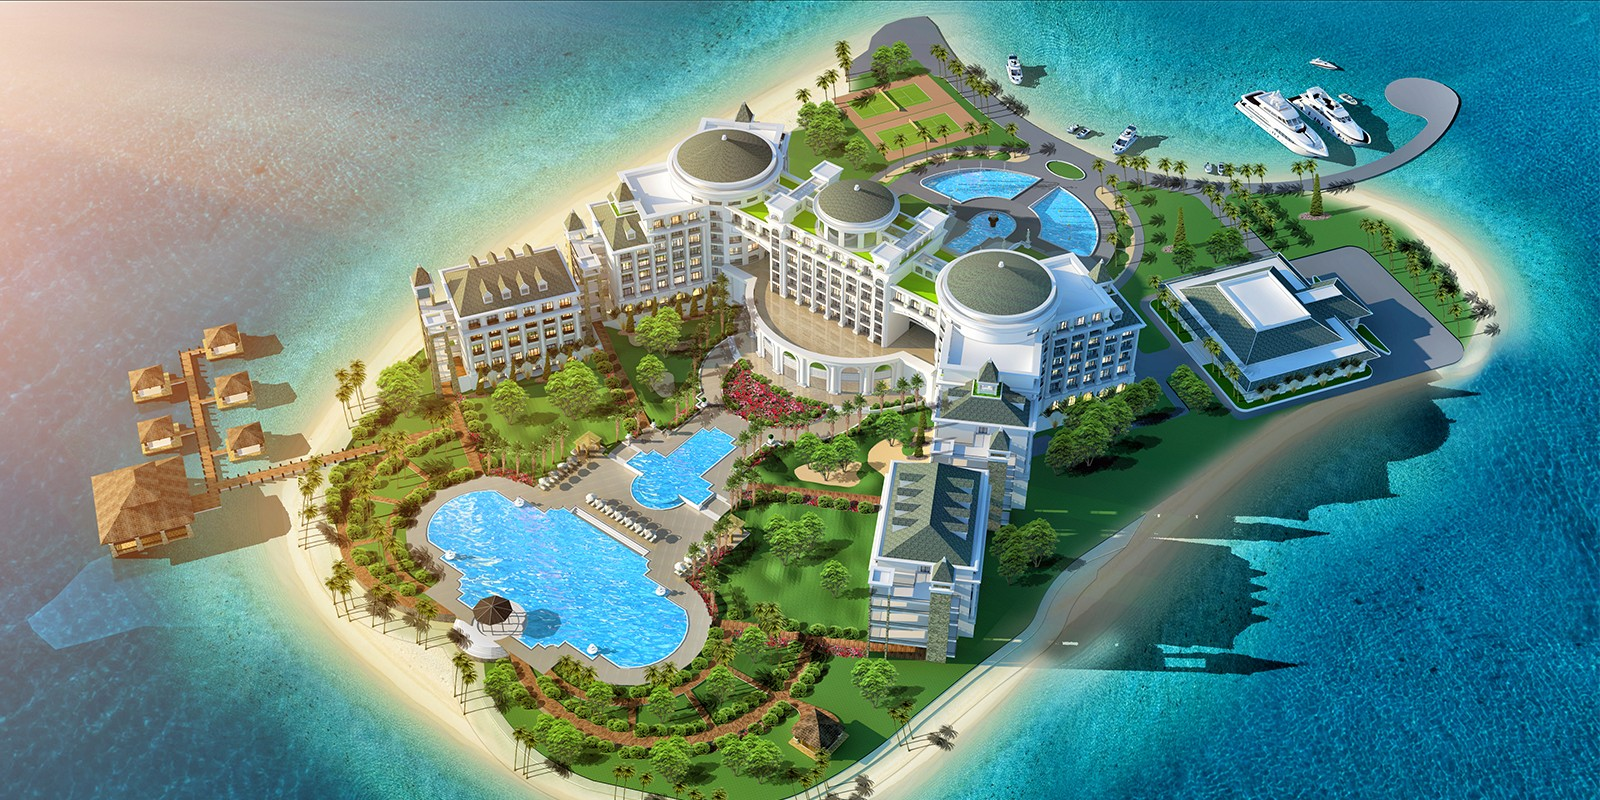 Tour Hạ Long - Vinpearl Resort Hạ Long